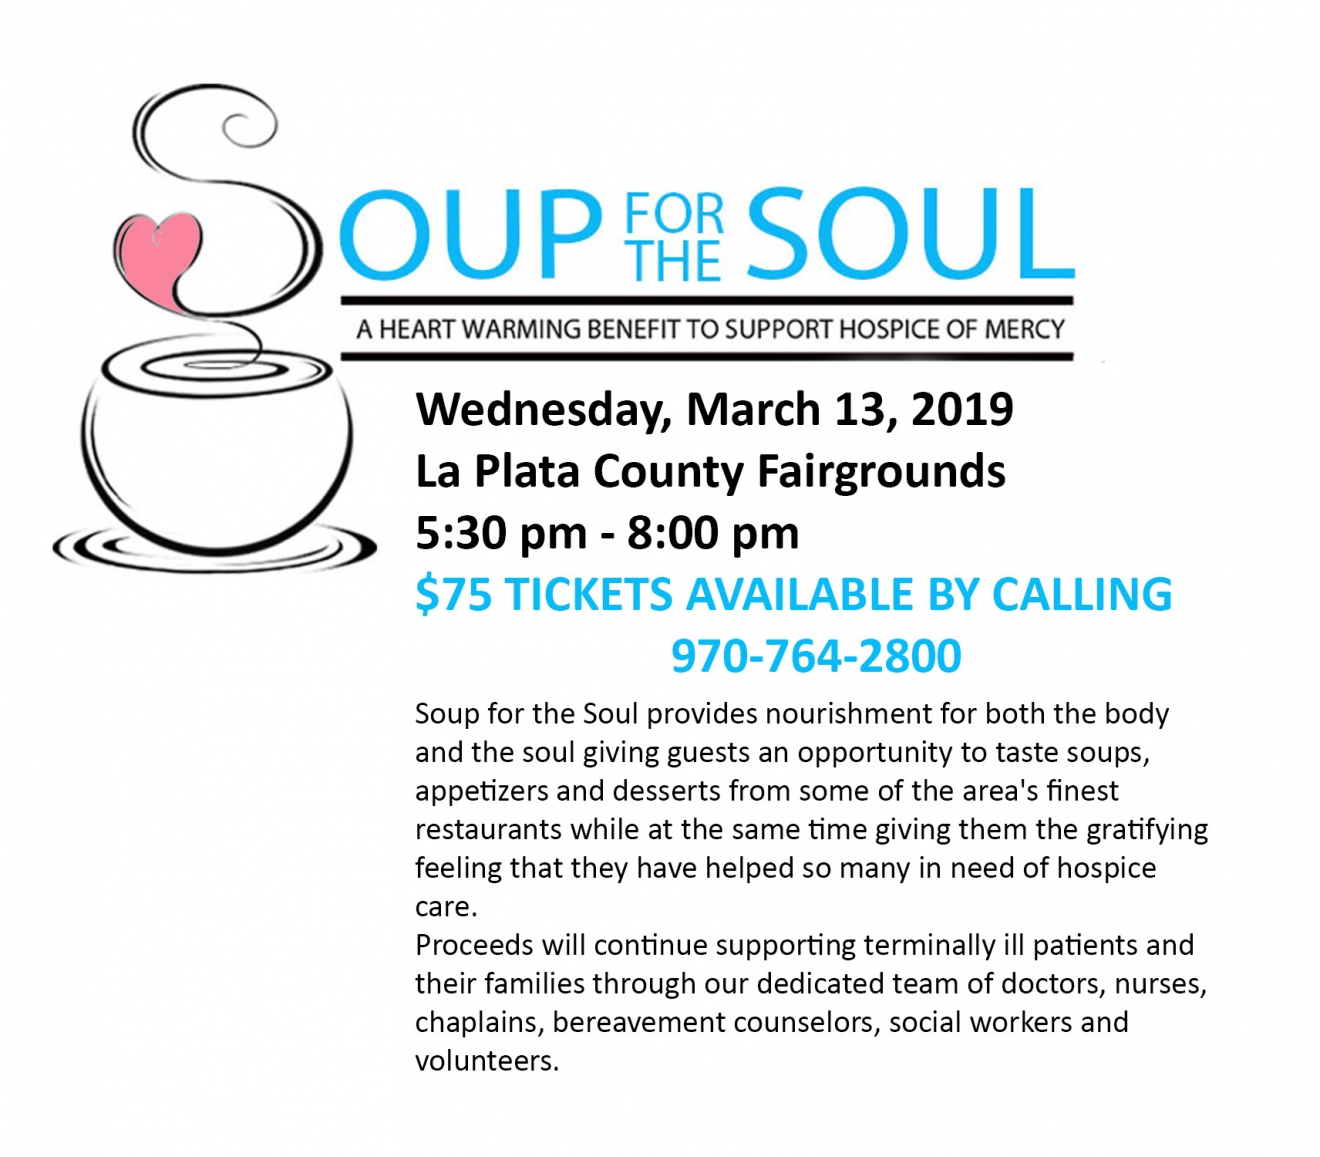 Soup for soul-pathways